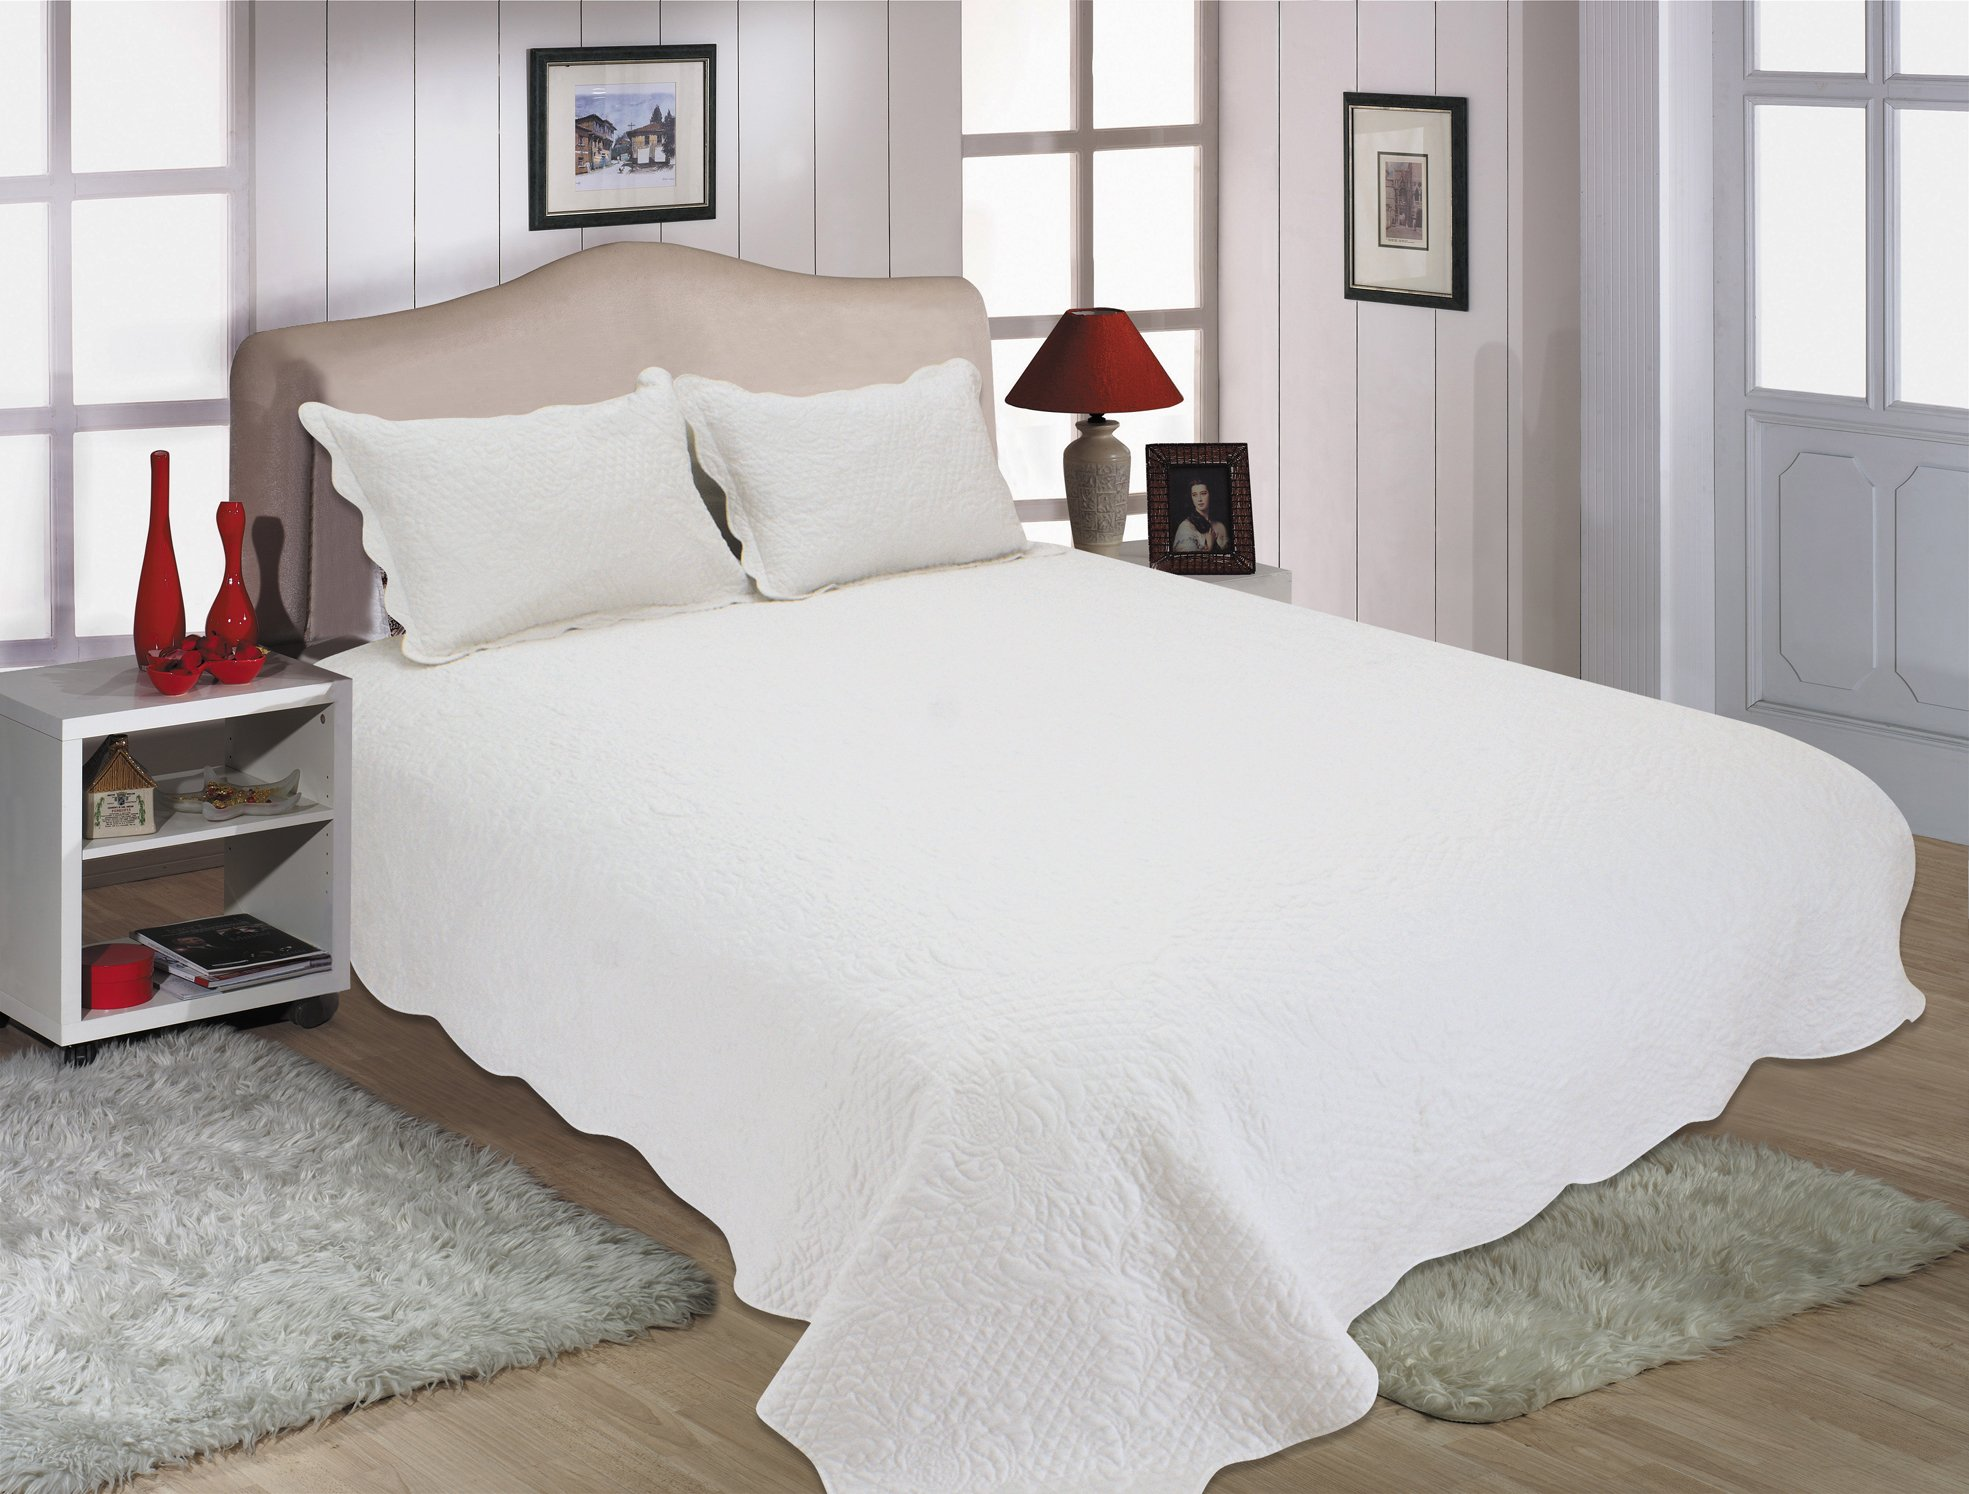 "ALL FOR YOU 3pc Reversible Quilt Set, Bedspread, and Coverlet-white/off white-Oversize 100"" x 110"" (Larger King with king size pillow shams,king, California King)"